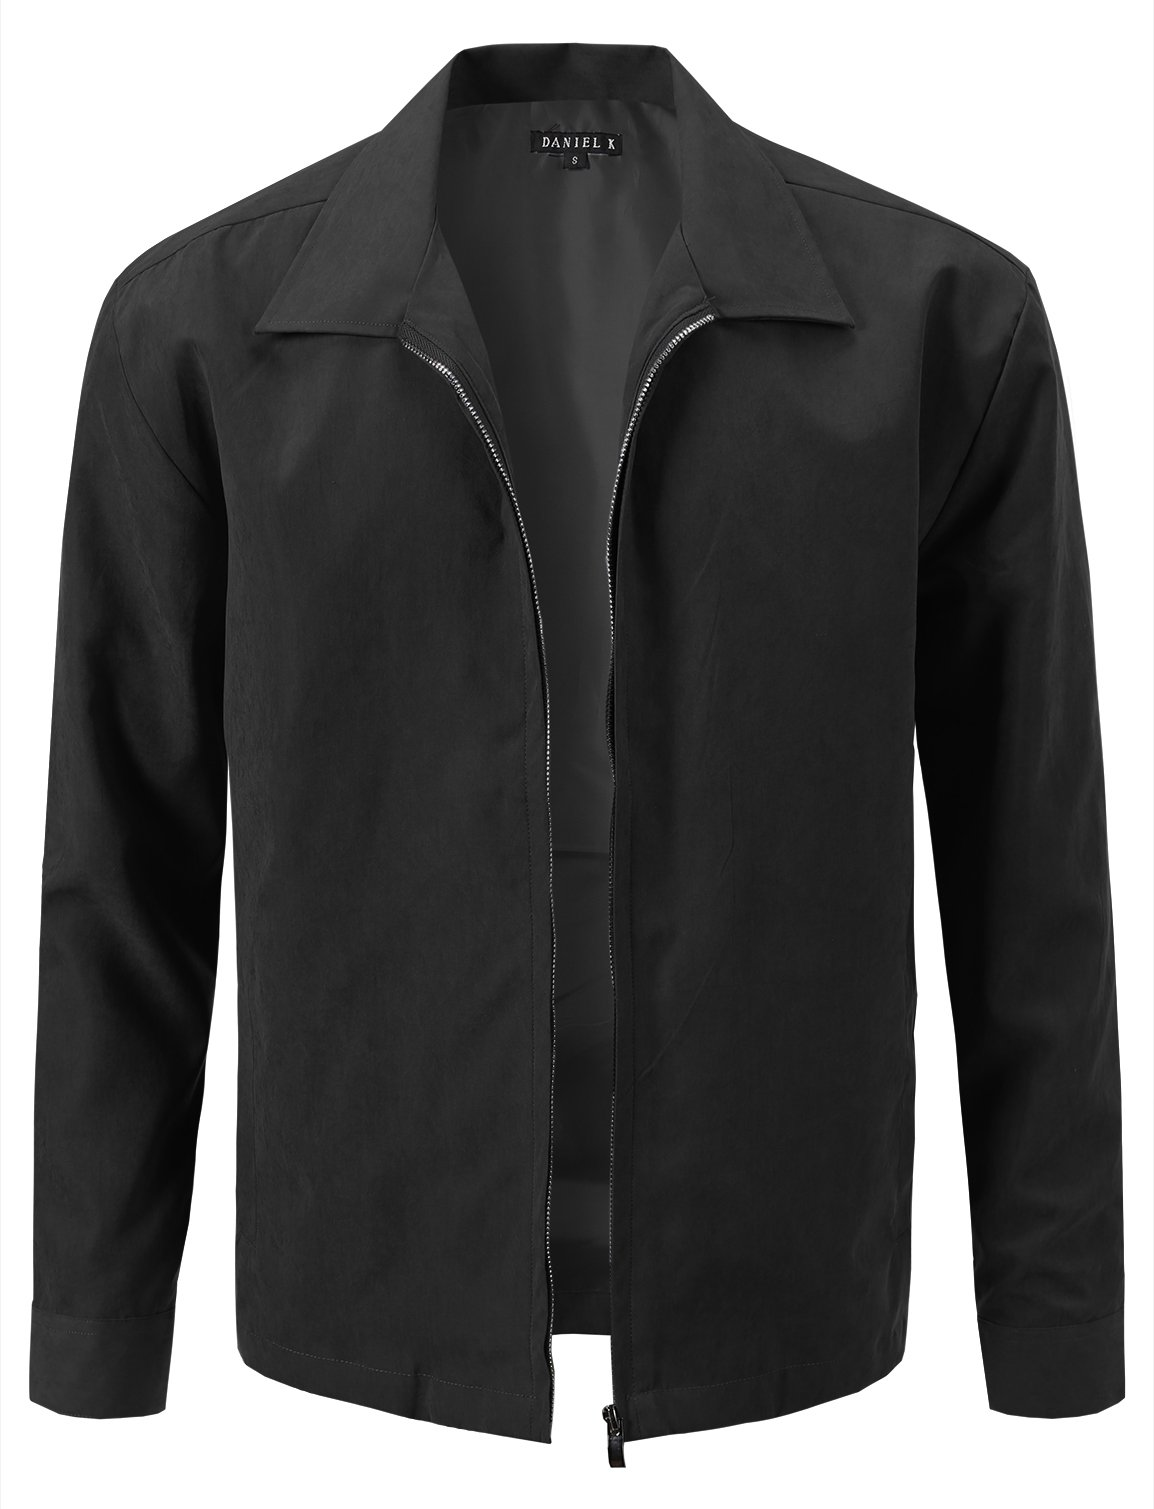 7 Encounter Men's Lightweight Jacket Black L